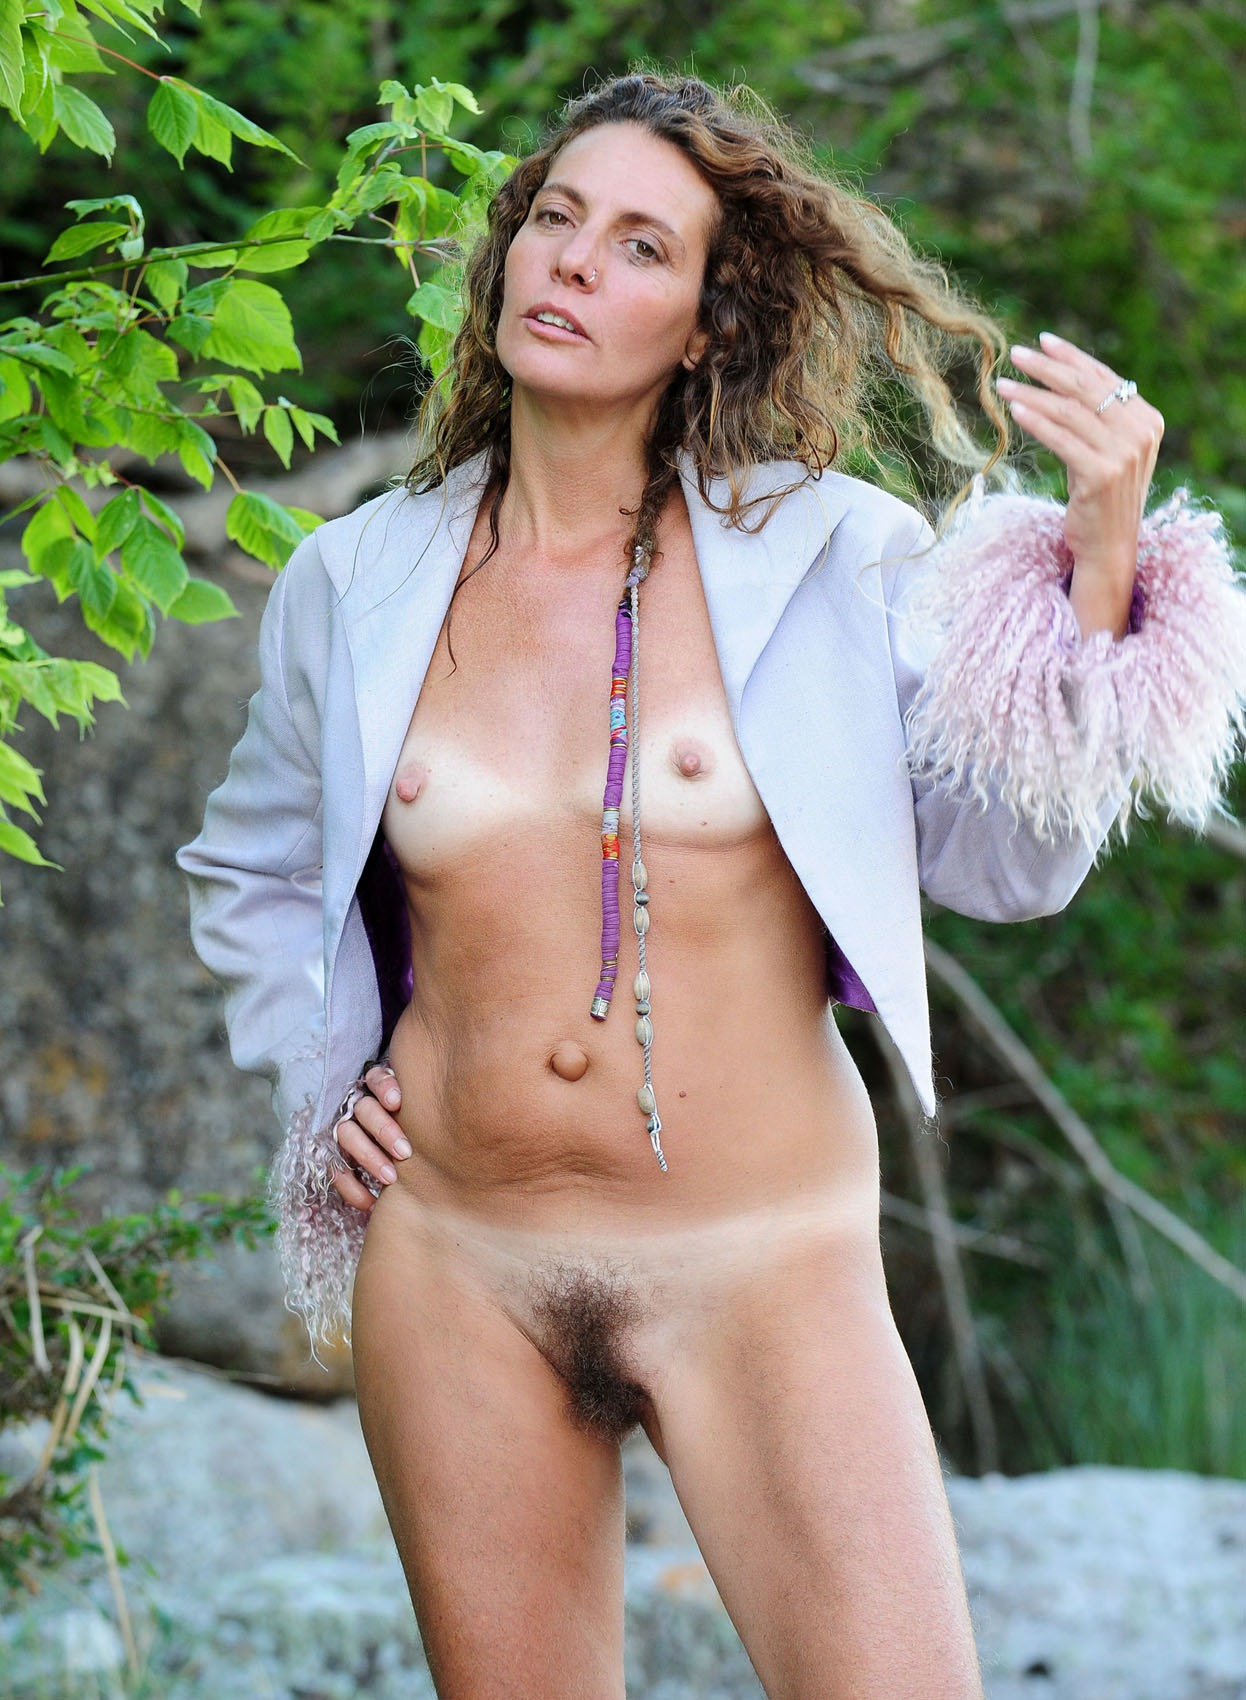 amateur wife swapping porn and amateur wife swap porn photos #Pamela#pam012#ATKhairy#mature#milf#mom#mommy#cougar#wife#hirsute#hairy#hairypussy#bush#natural#pussy#hot#sexy#beautiful#gorgeous#hippie